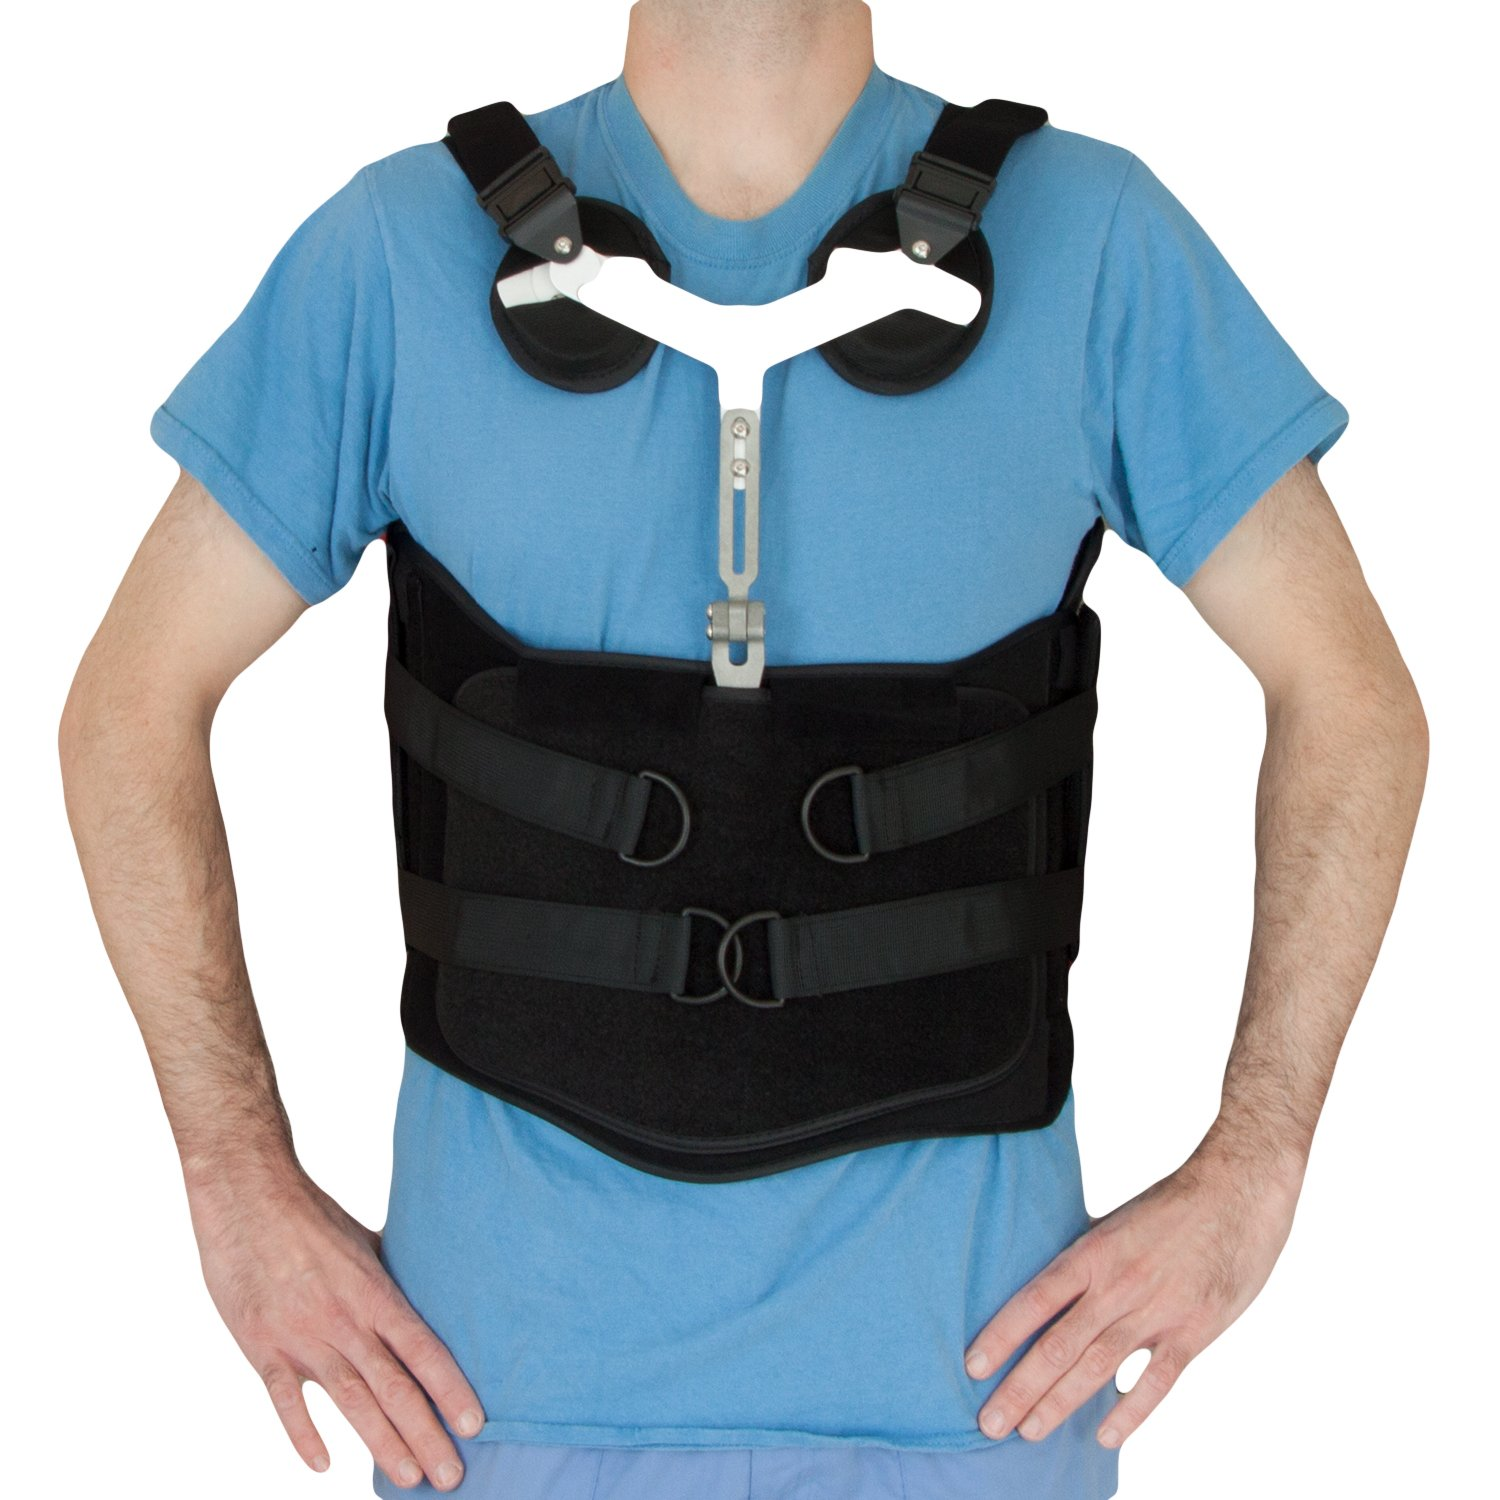 TLSO Orthosis, Back Brace 15 Degree Lordosis, SELF ADJUSTING SILICONE CHEST PADS (2XL)